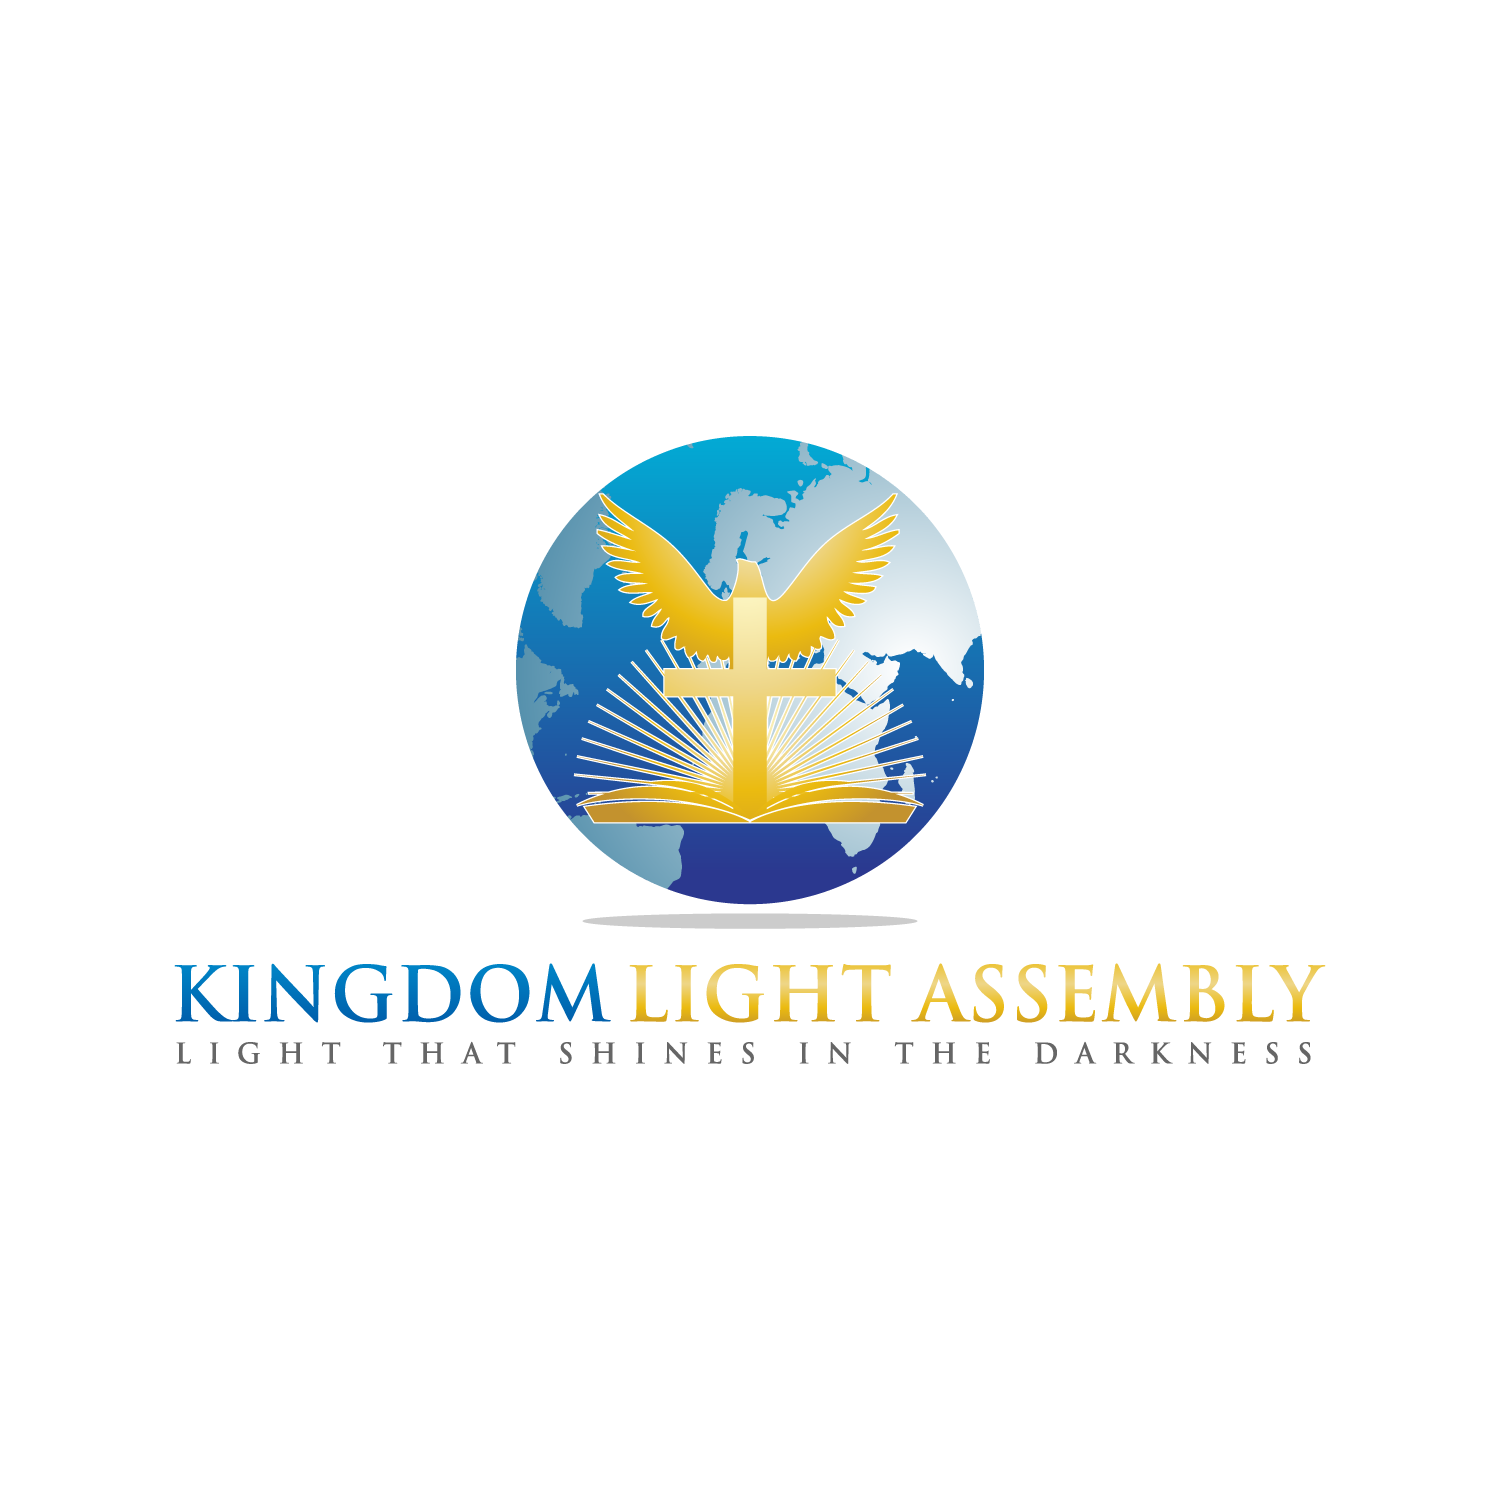 Kingdom light assembly